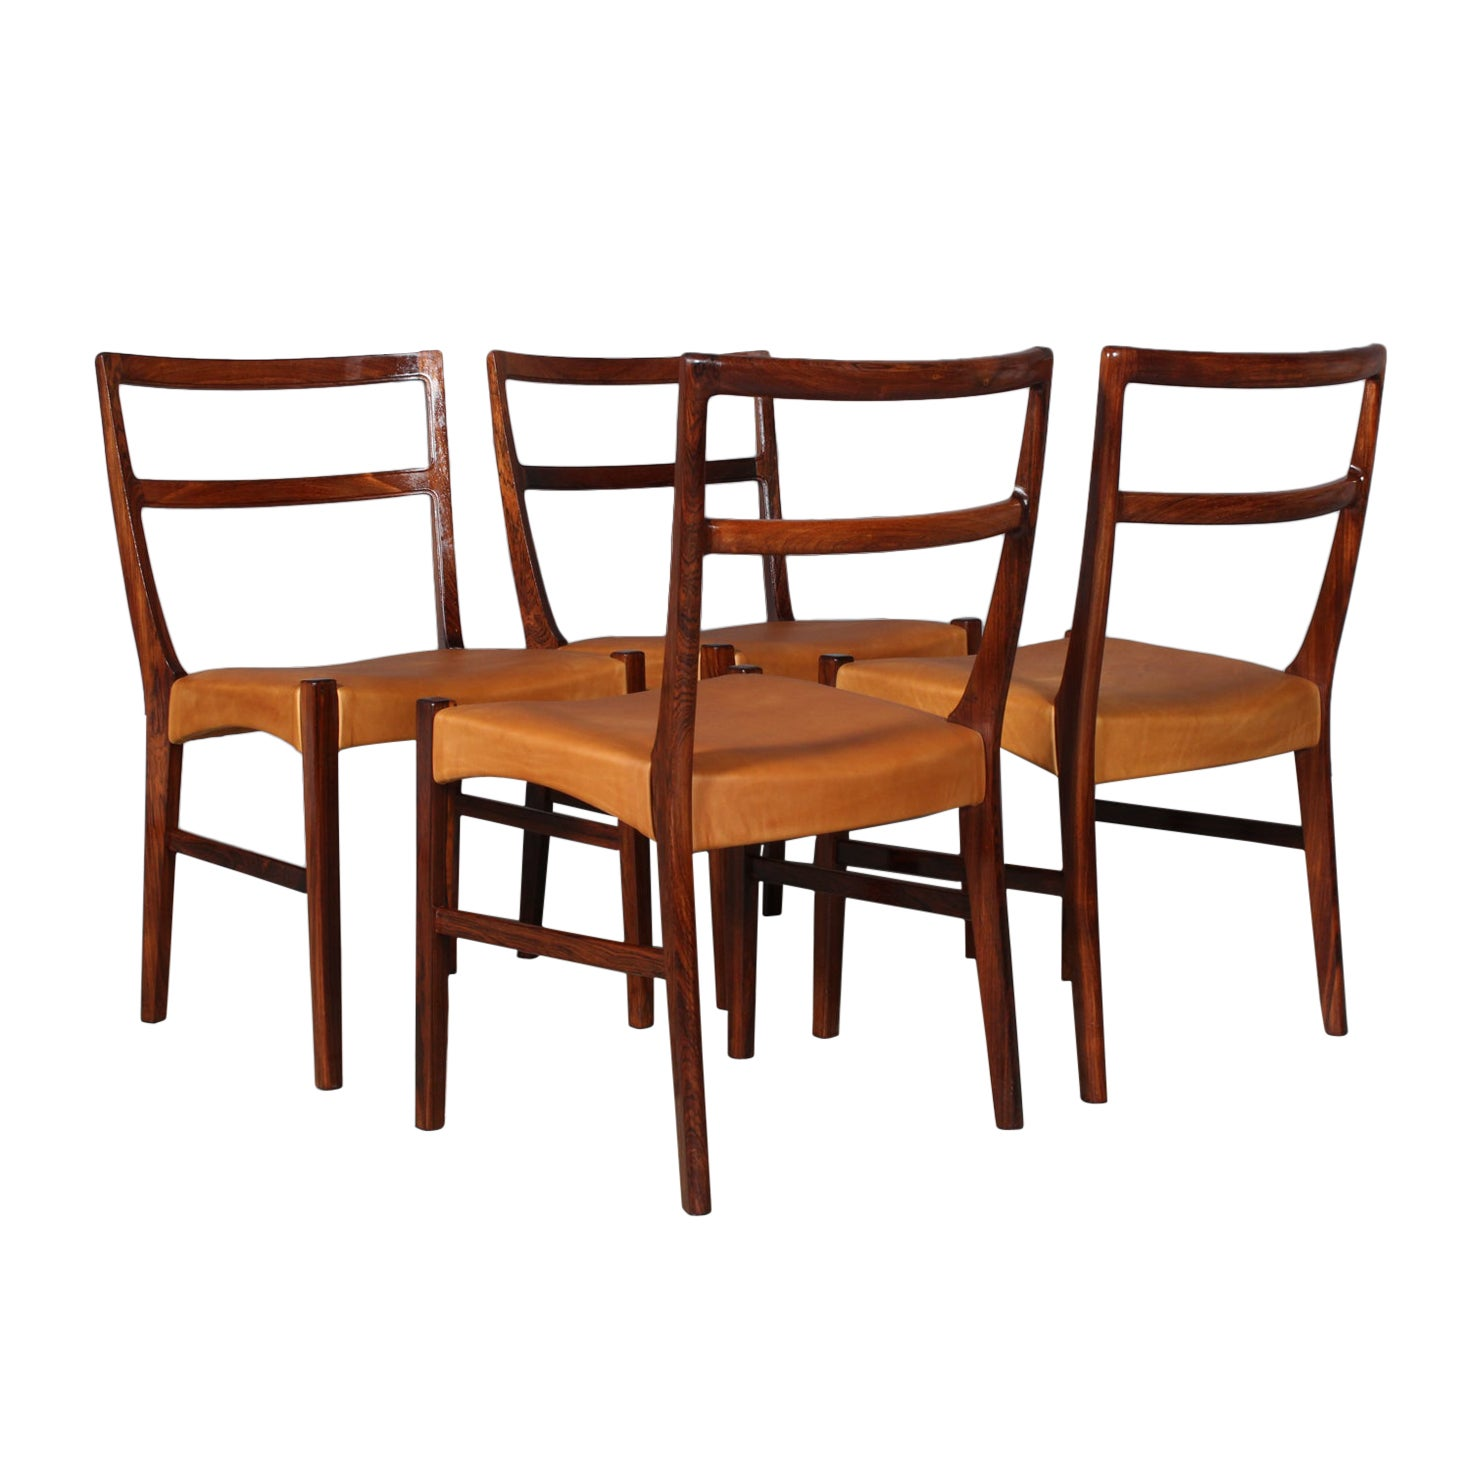 Johannes Andersen four Dining Chairs, Rosewood and Leather Upholstery